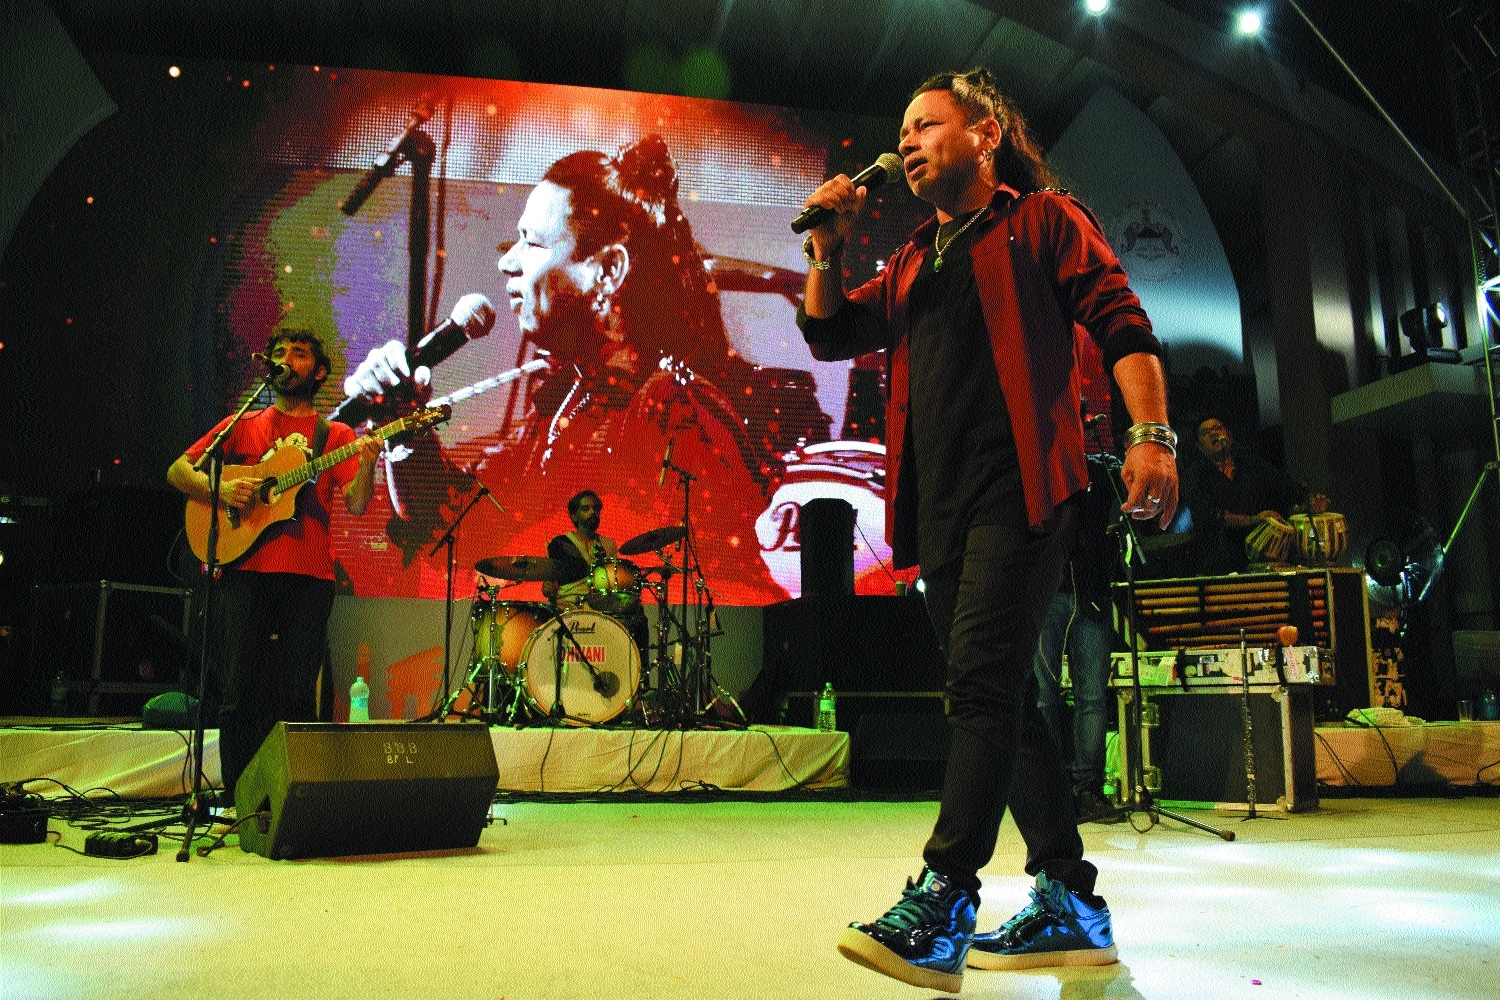 Kailash Kher's magical performance enthralls all at Ravindra Bhawan